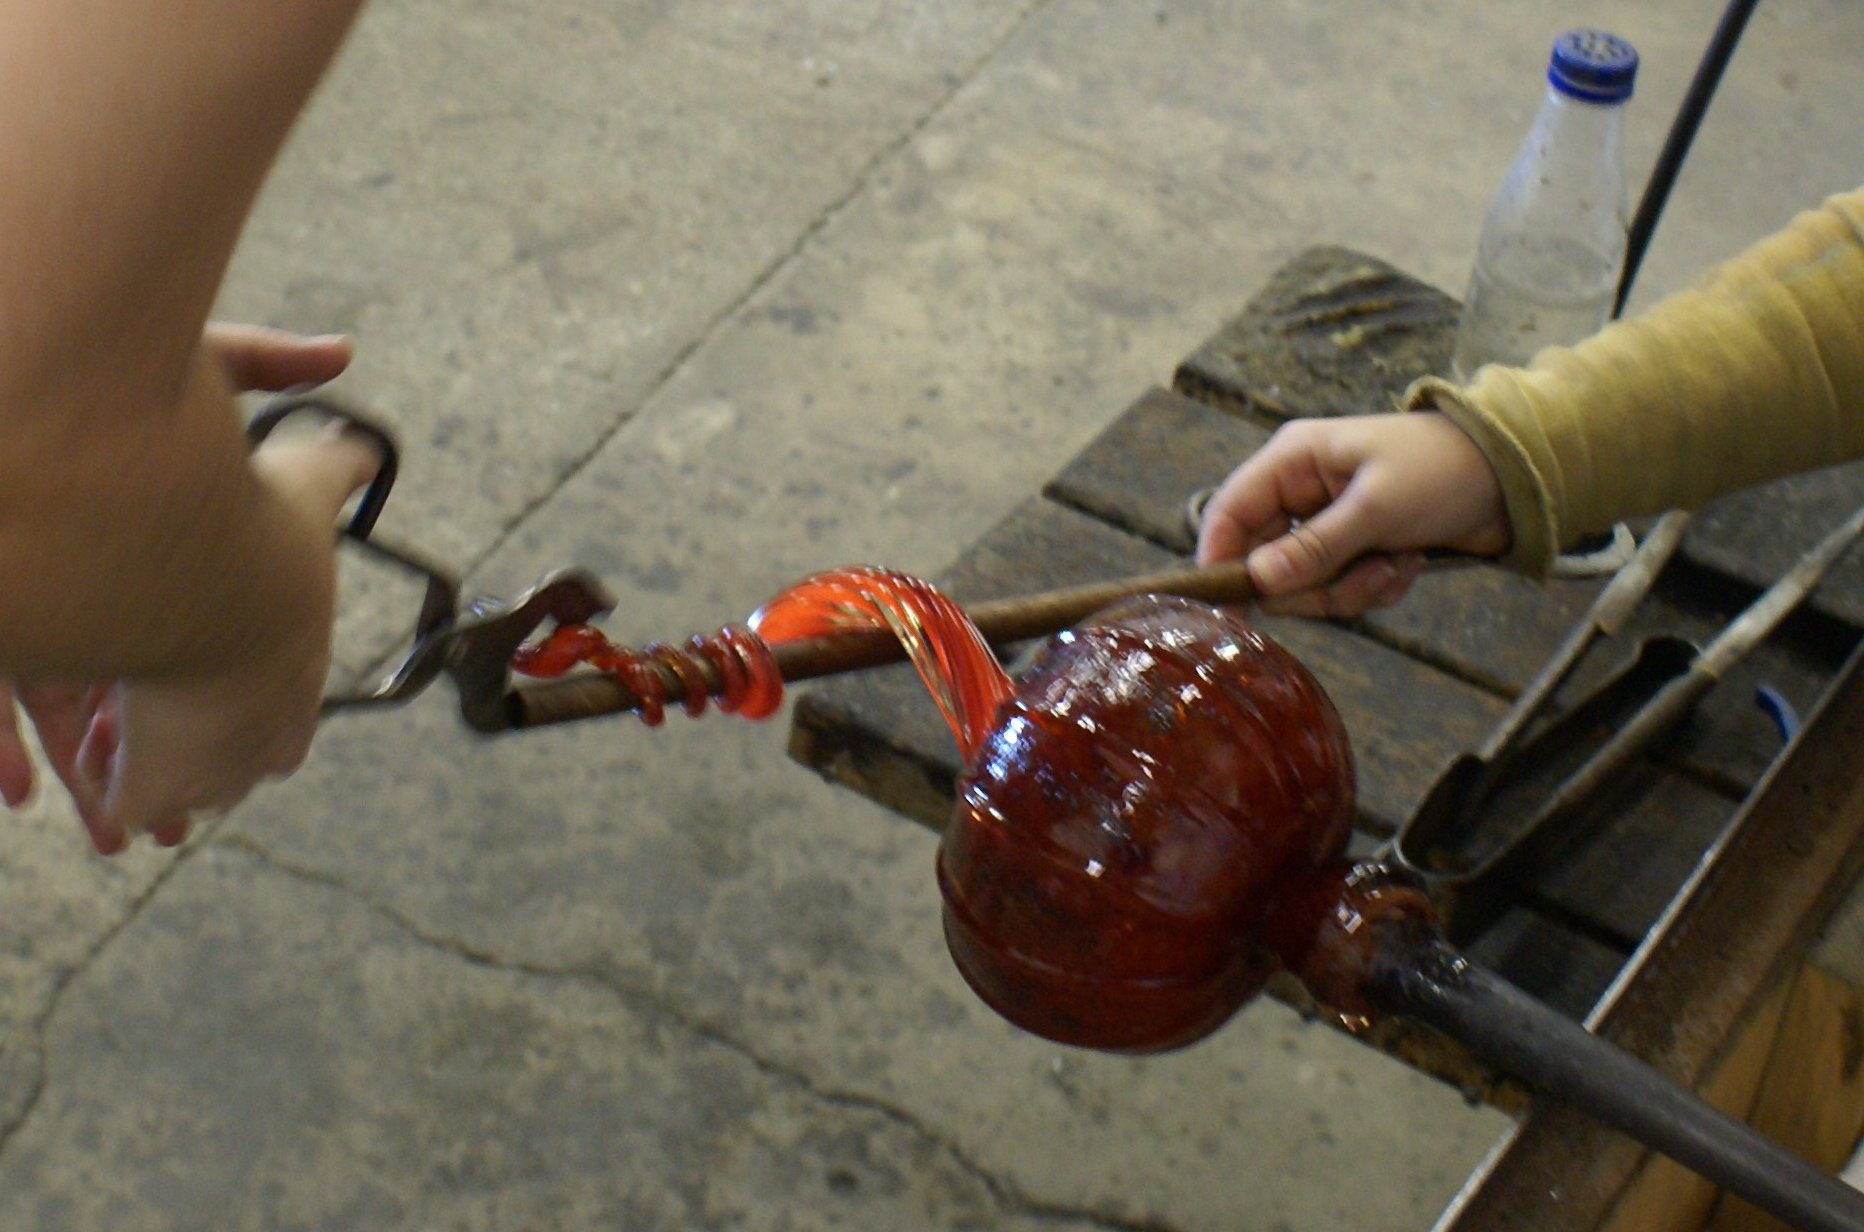 Wrap the hot glass stem around a pipe